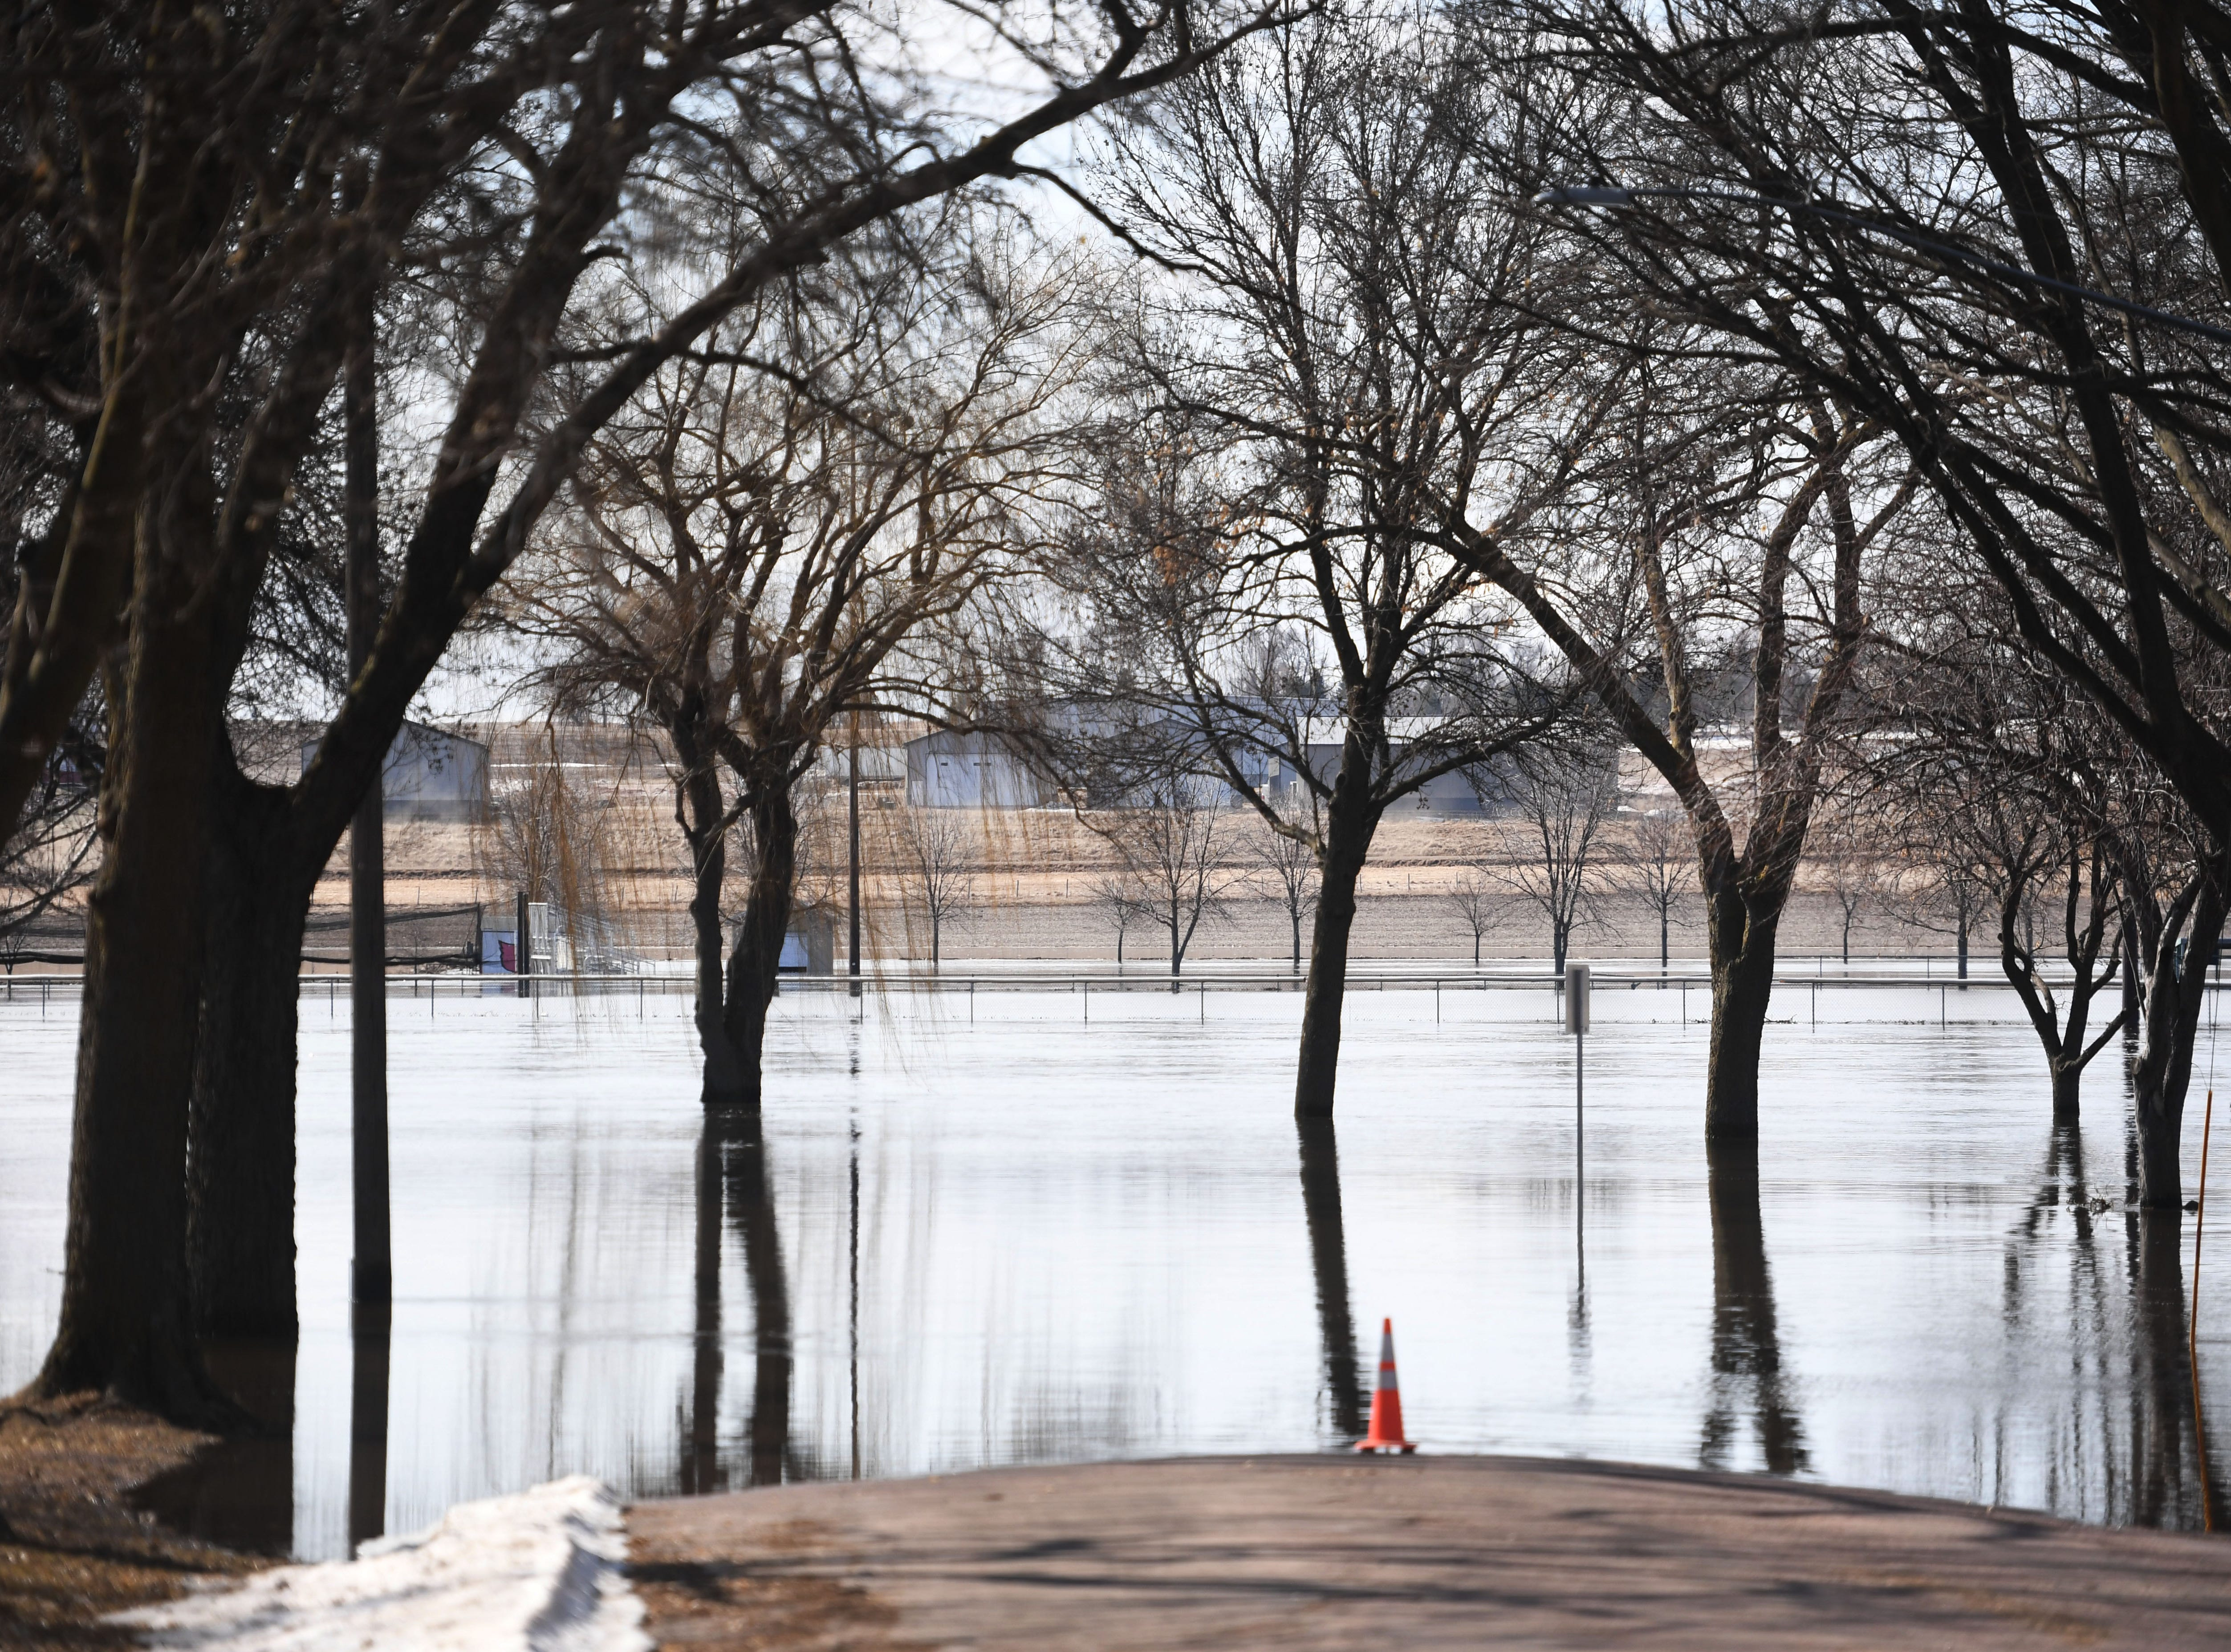 Flooding in Baltic Monday, March 25, in Baltic, S.D.